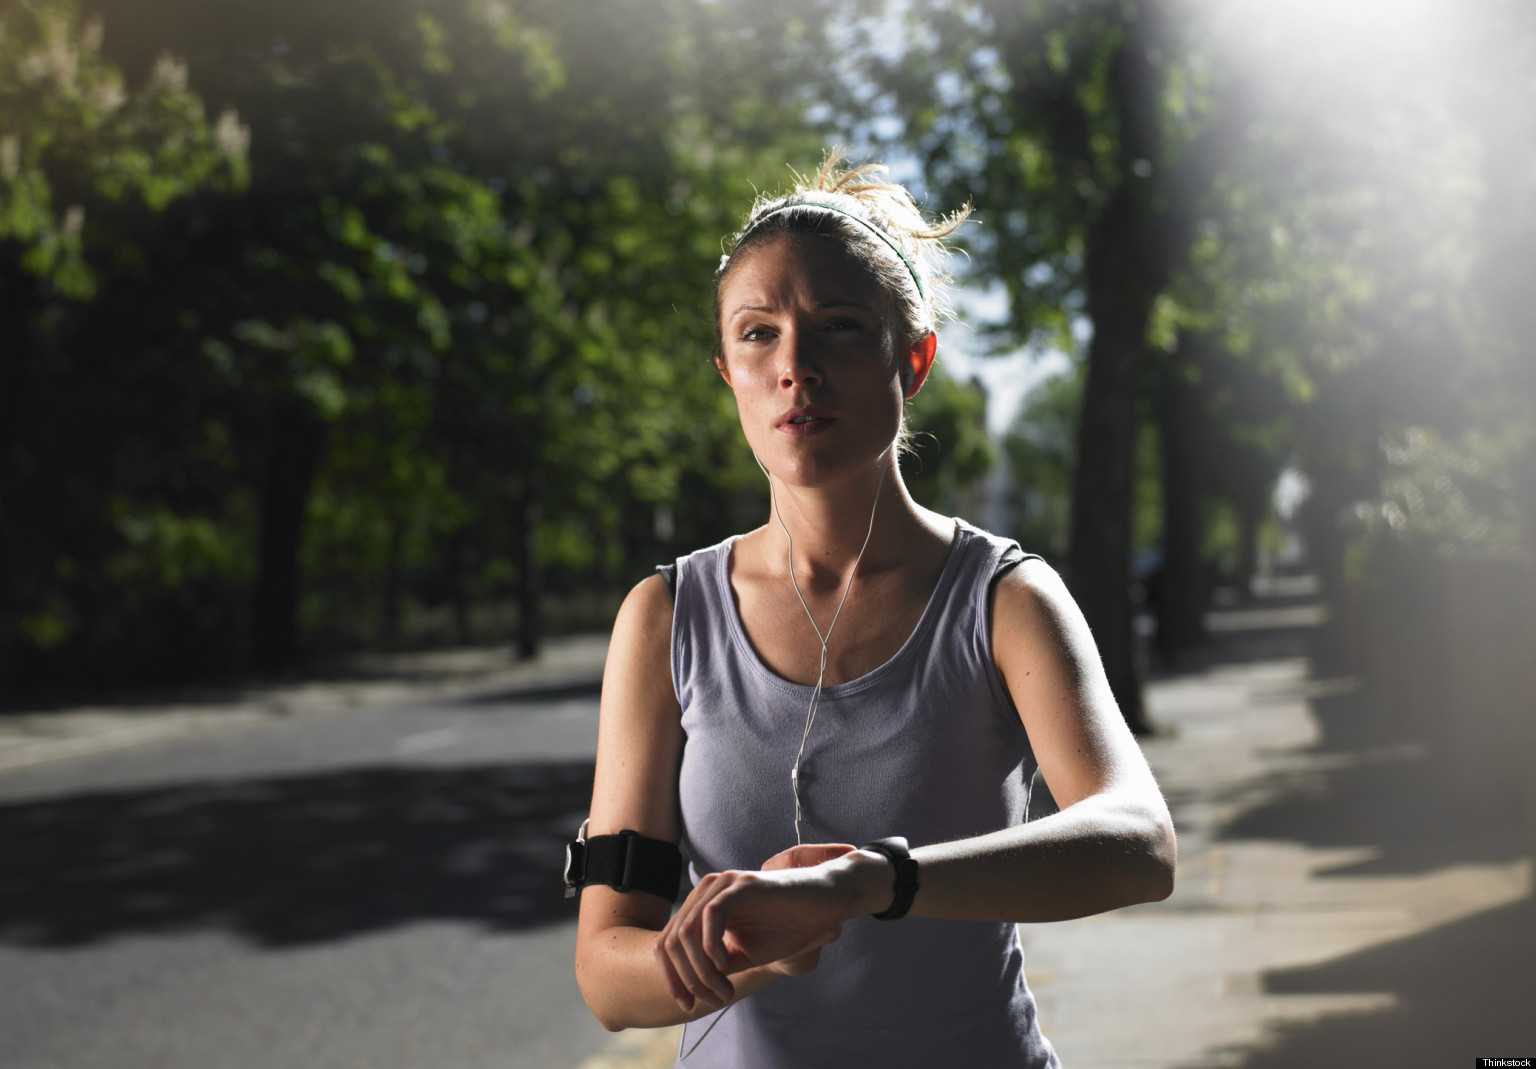 Get In Shape Fast: HIIT Workout Offers Quick Way To Burn ...